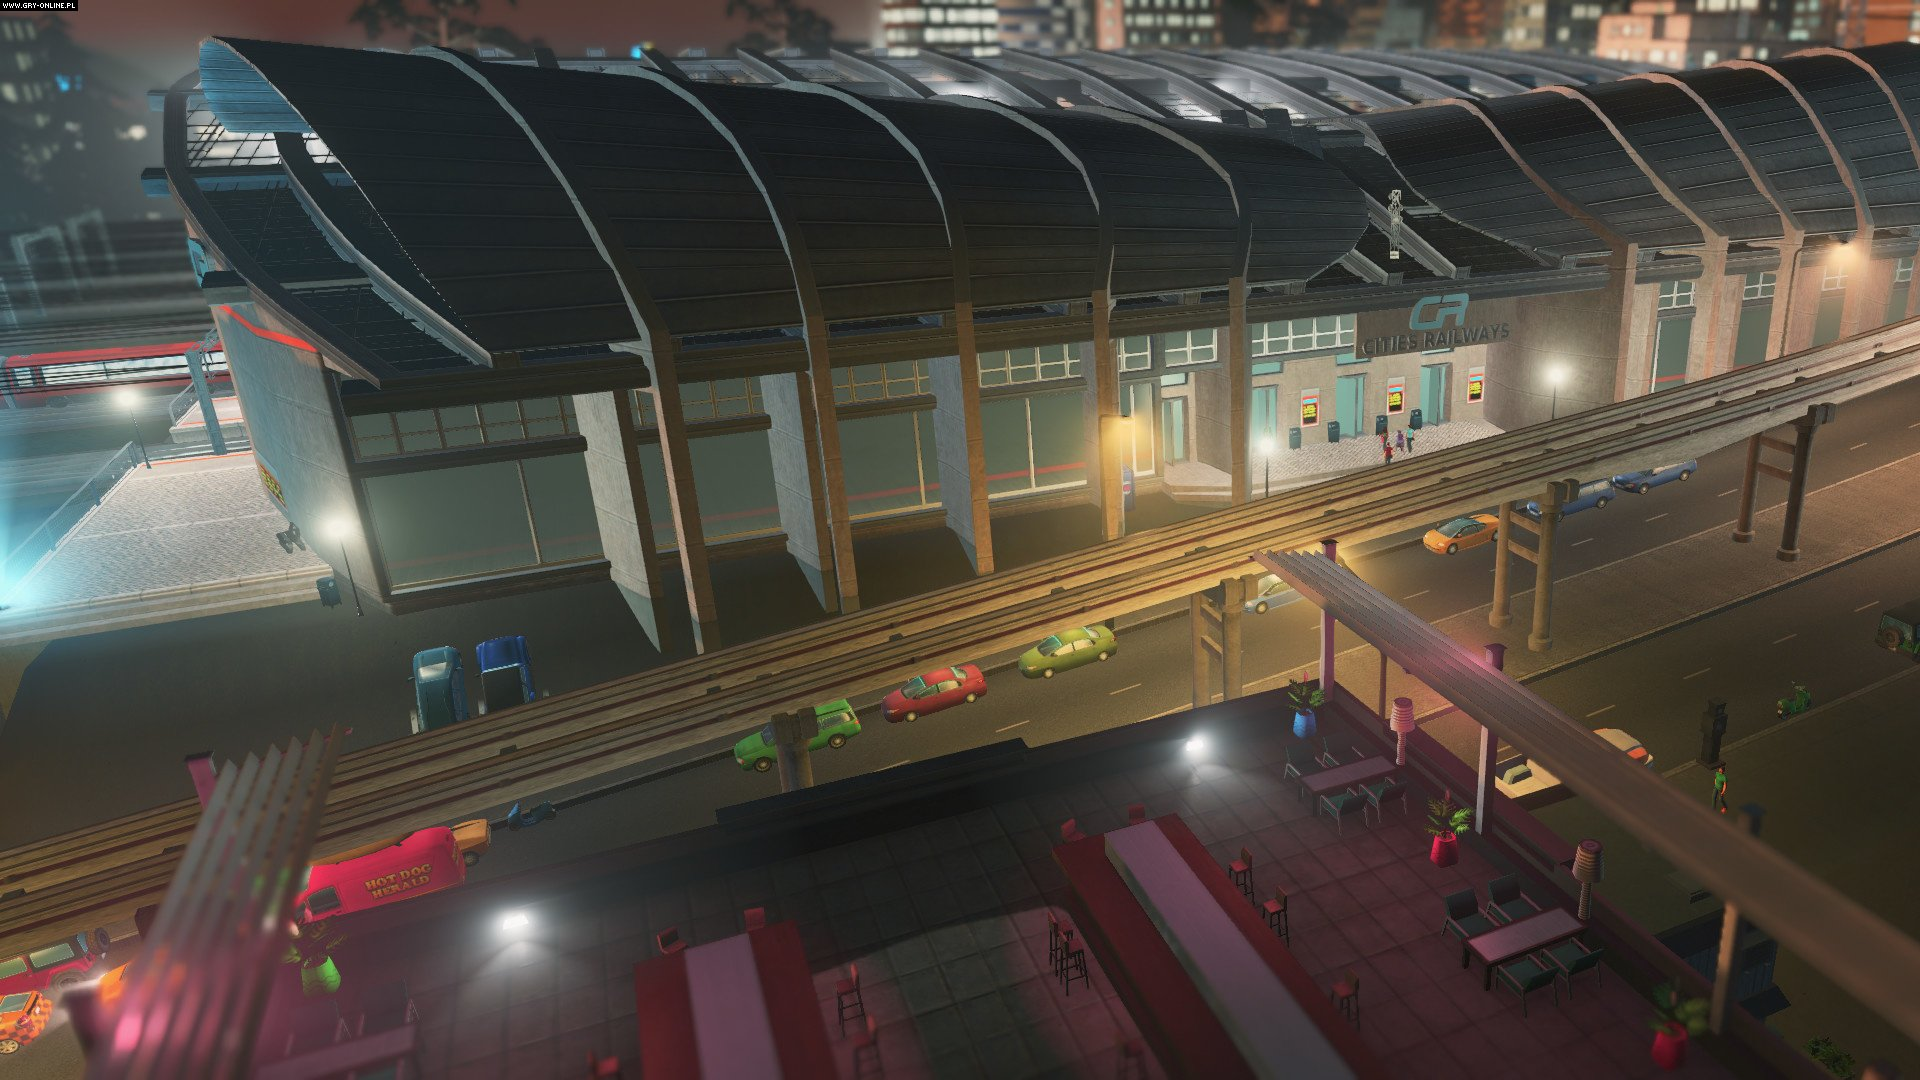 Cities: Skylines - Mass Transit PC Games Image 5/11, Colossal Order, Paradox Interactive